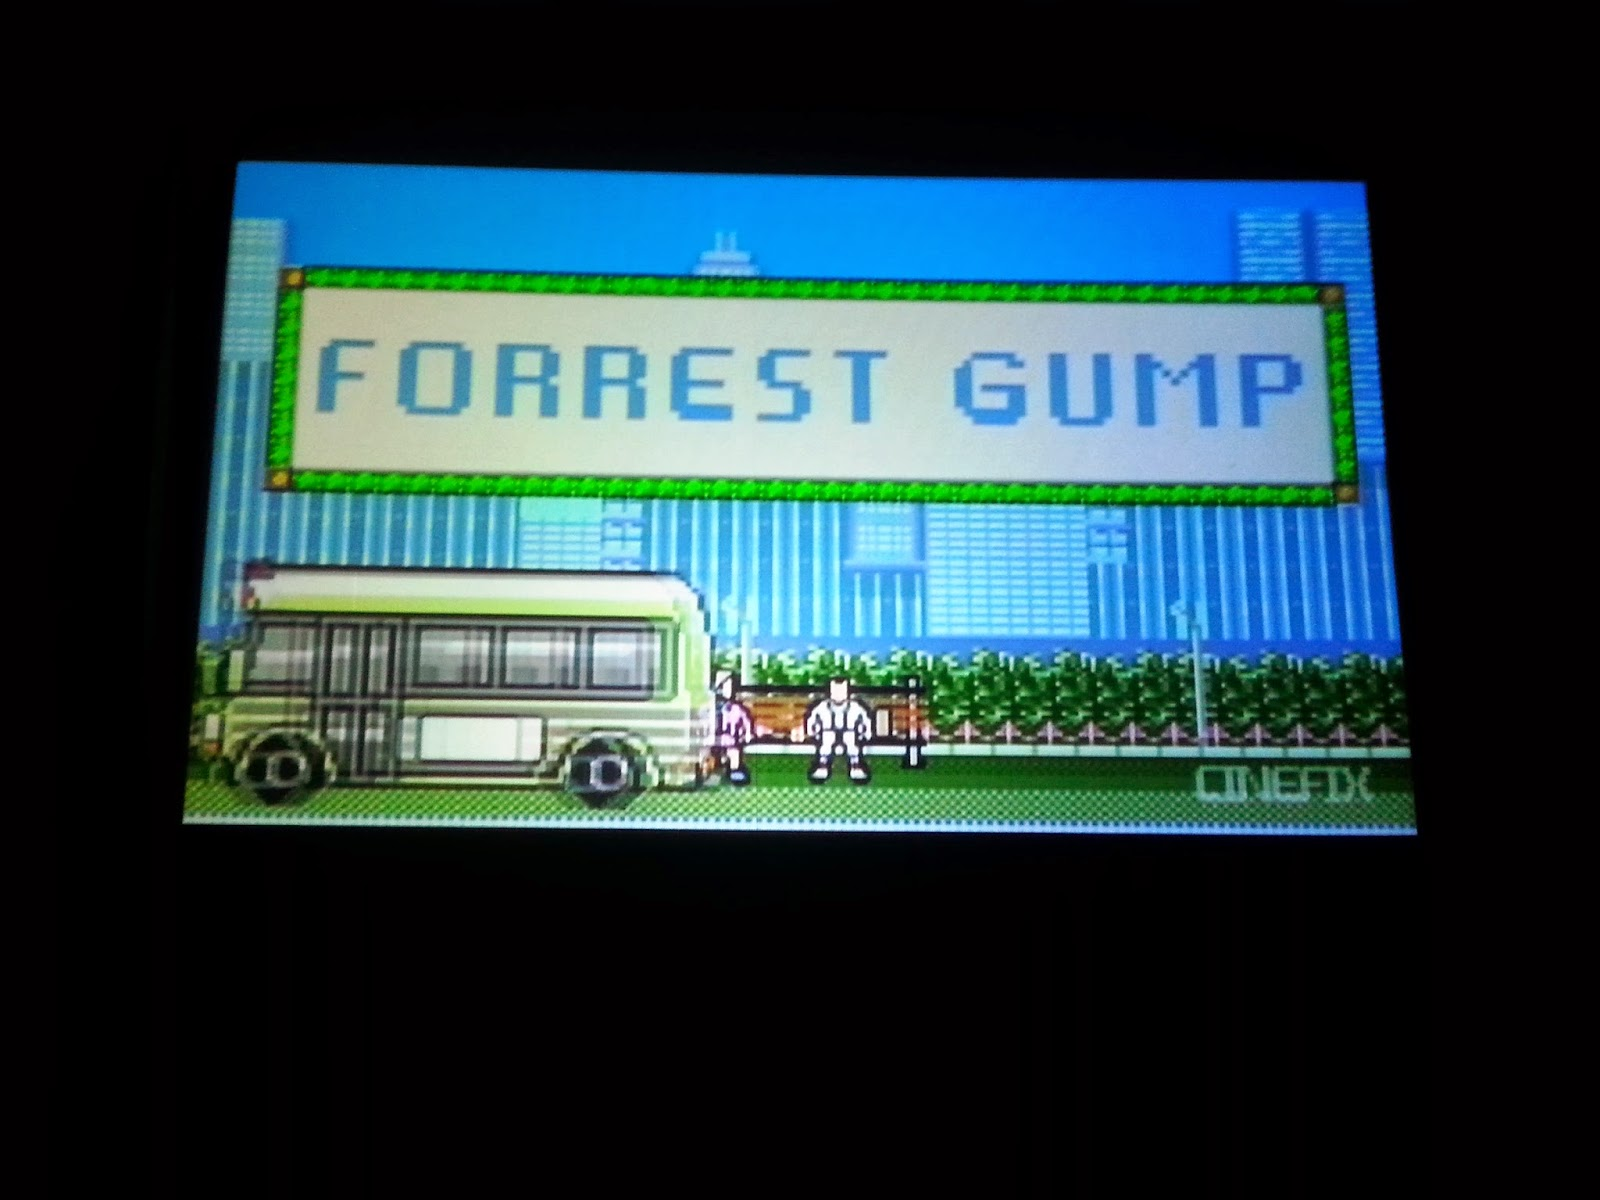 Screenshot of the title of an 8-Bit interpretation of the movie Forrest Gump.